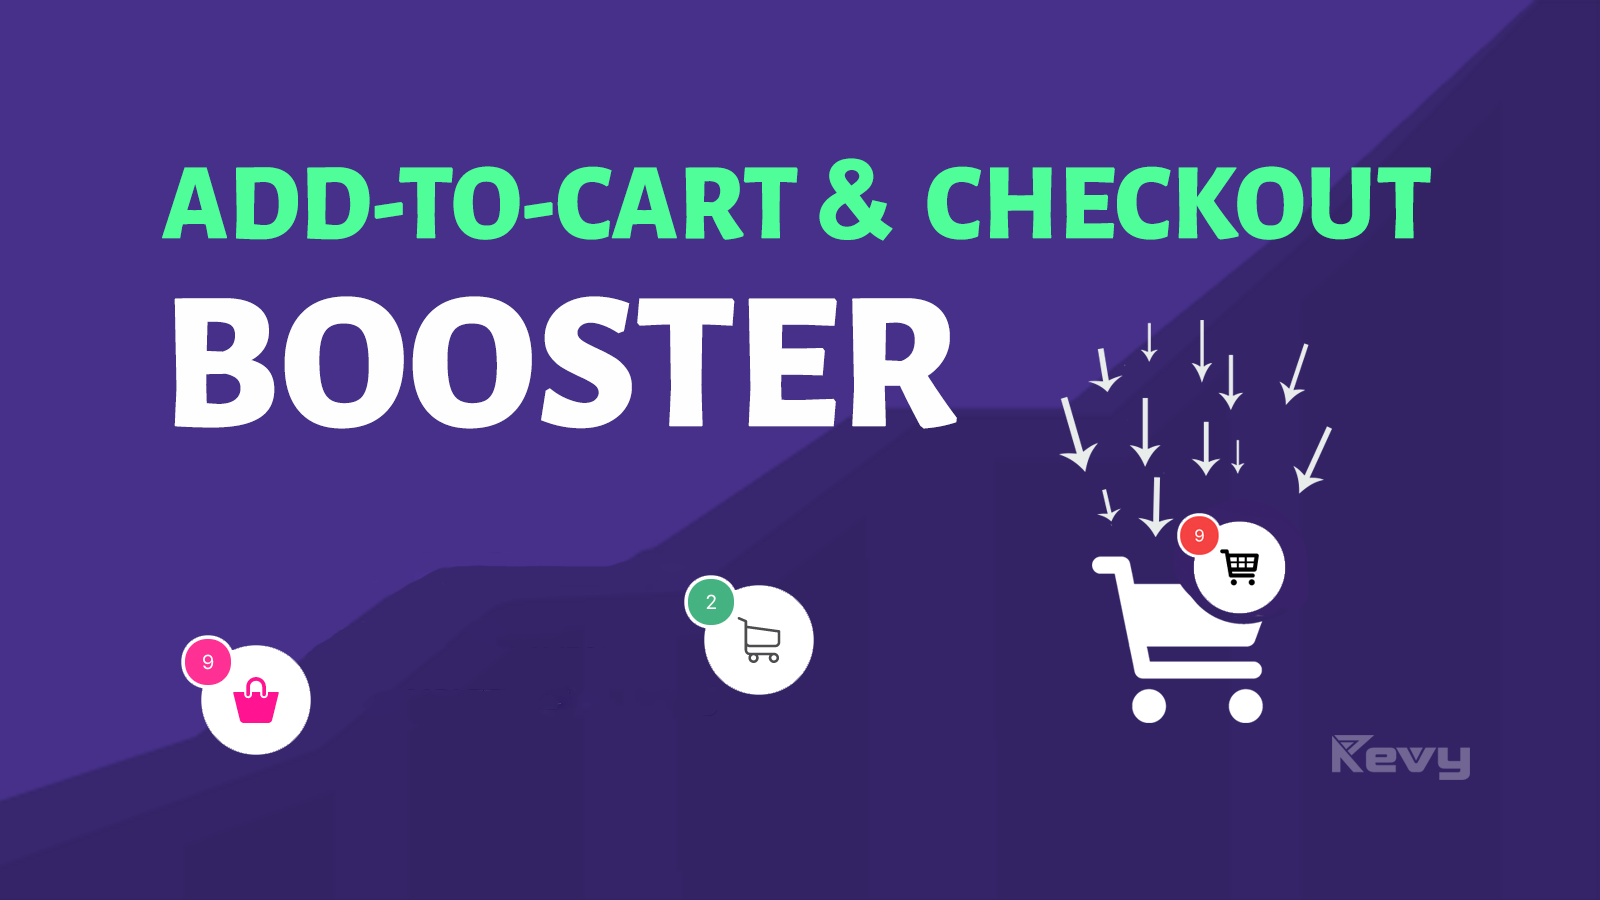 Banner Add-To-Cart & Checkout BOOSTER Shopify App